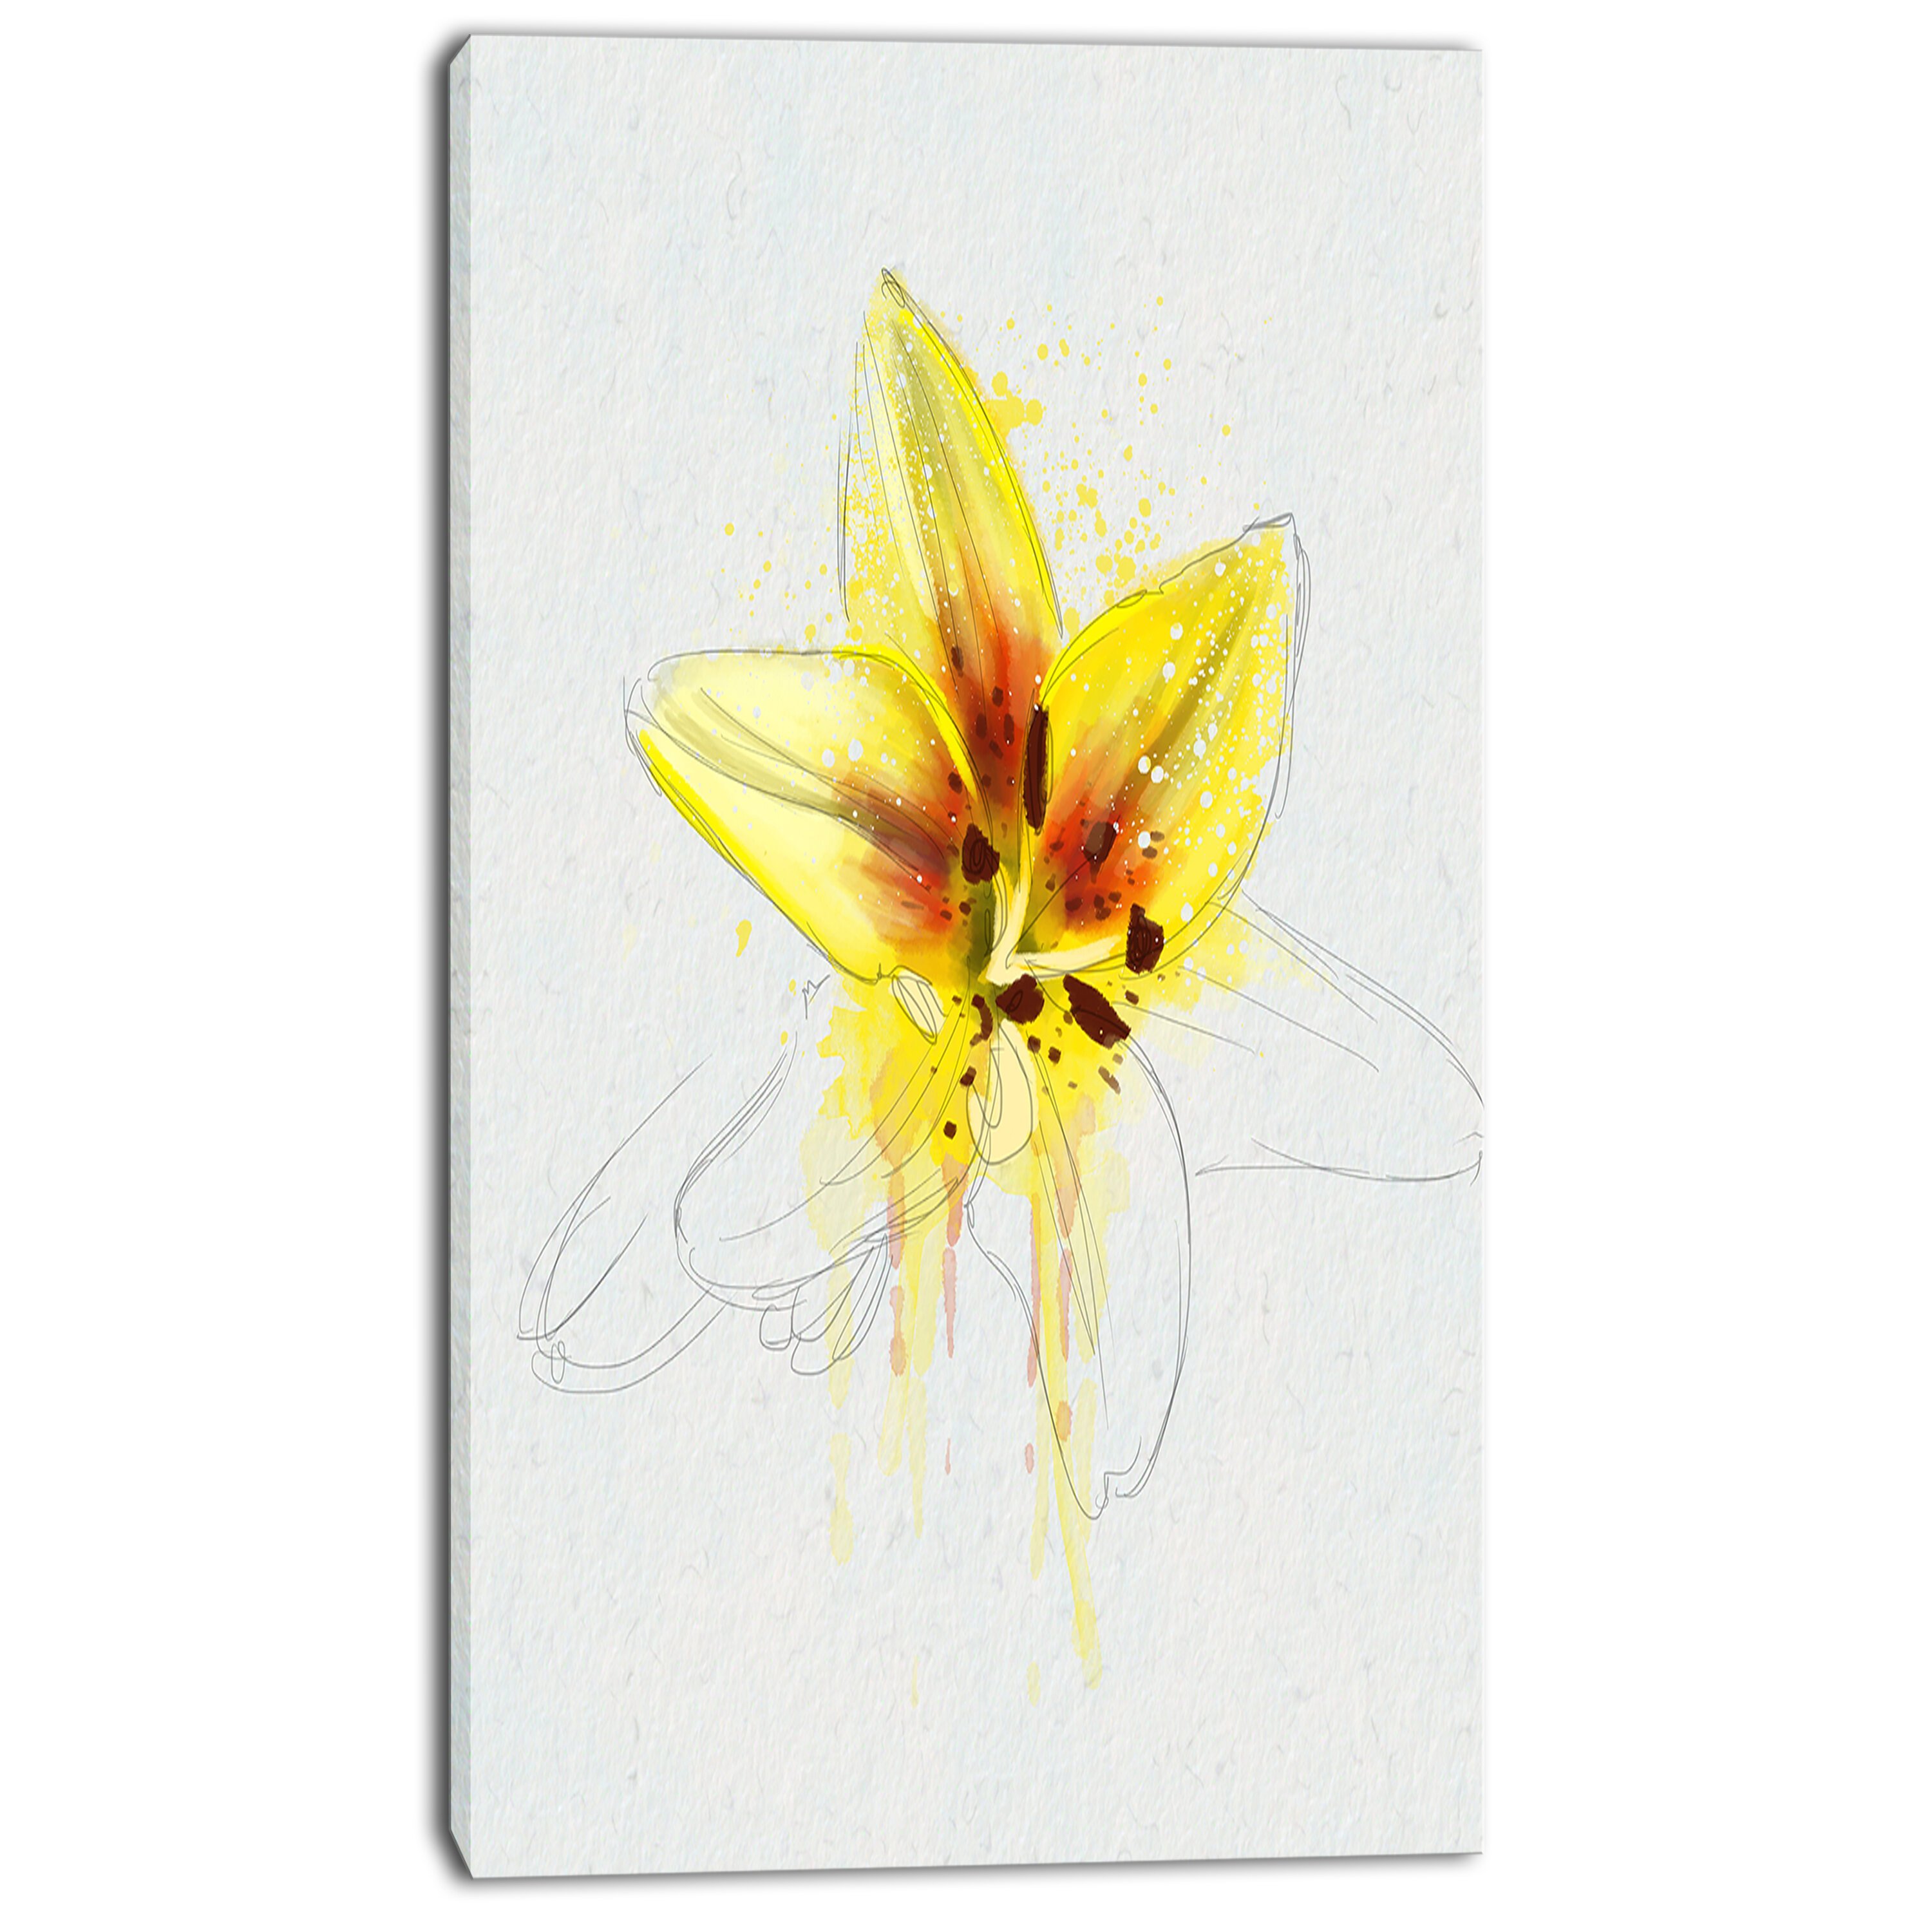 Designart Wonderful Yellow Lily Flower Sketch Painting Print On Wrapped Canvas Wayfair